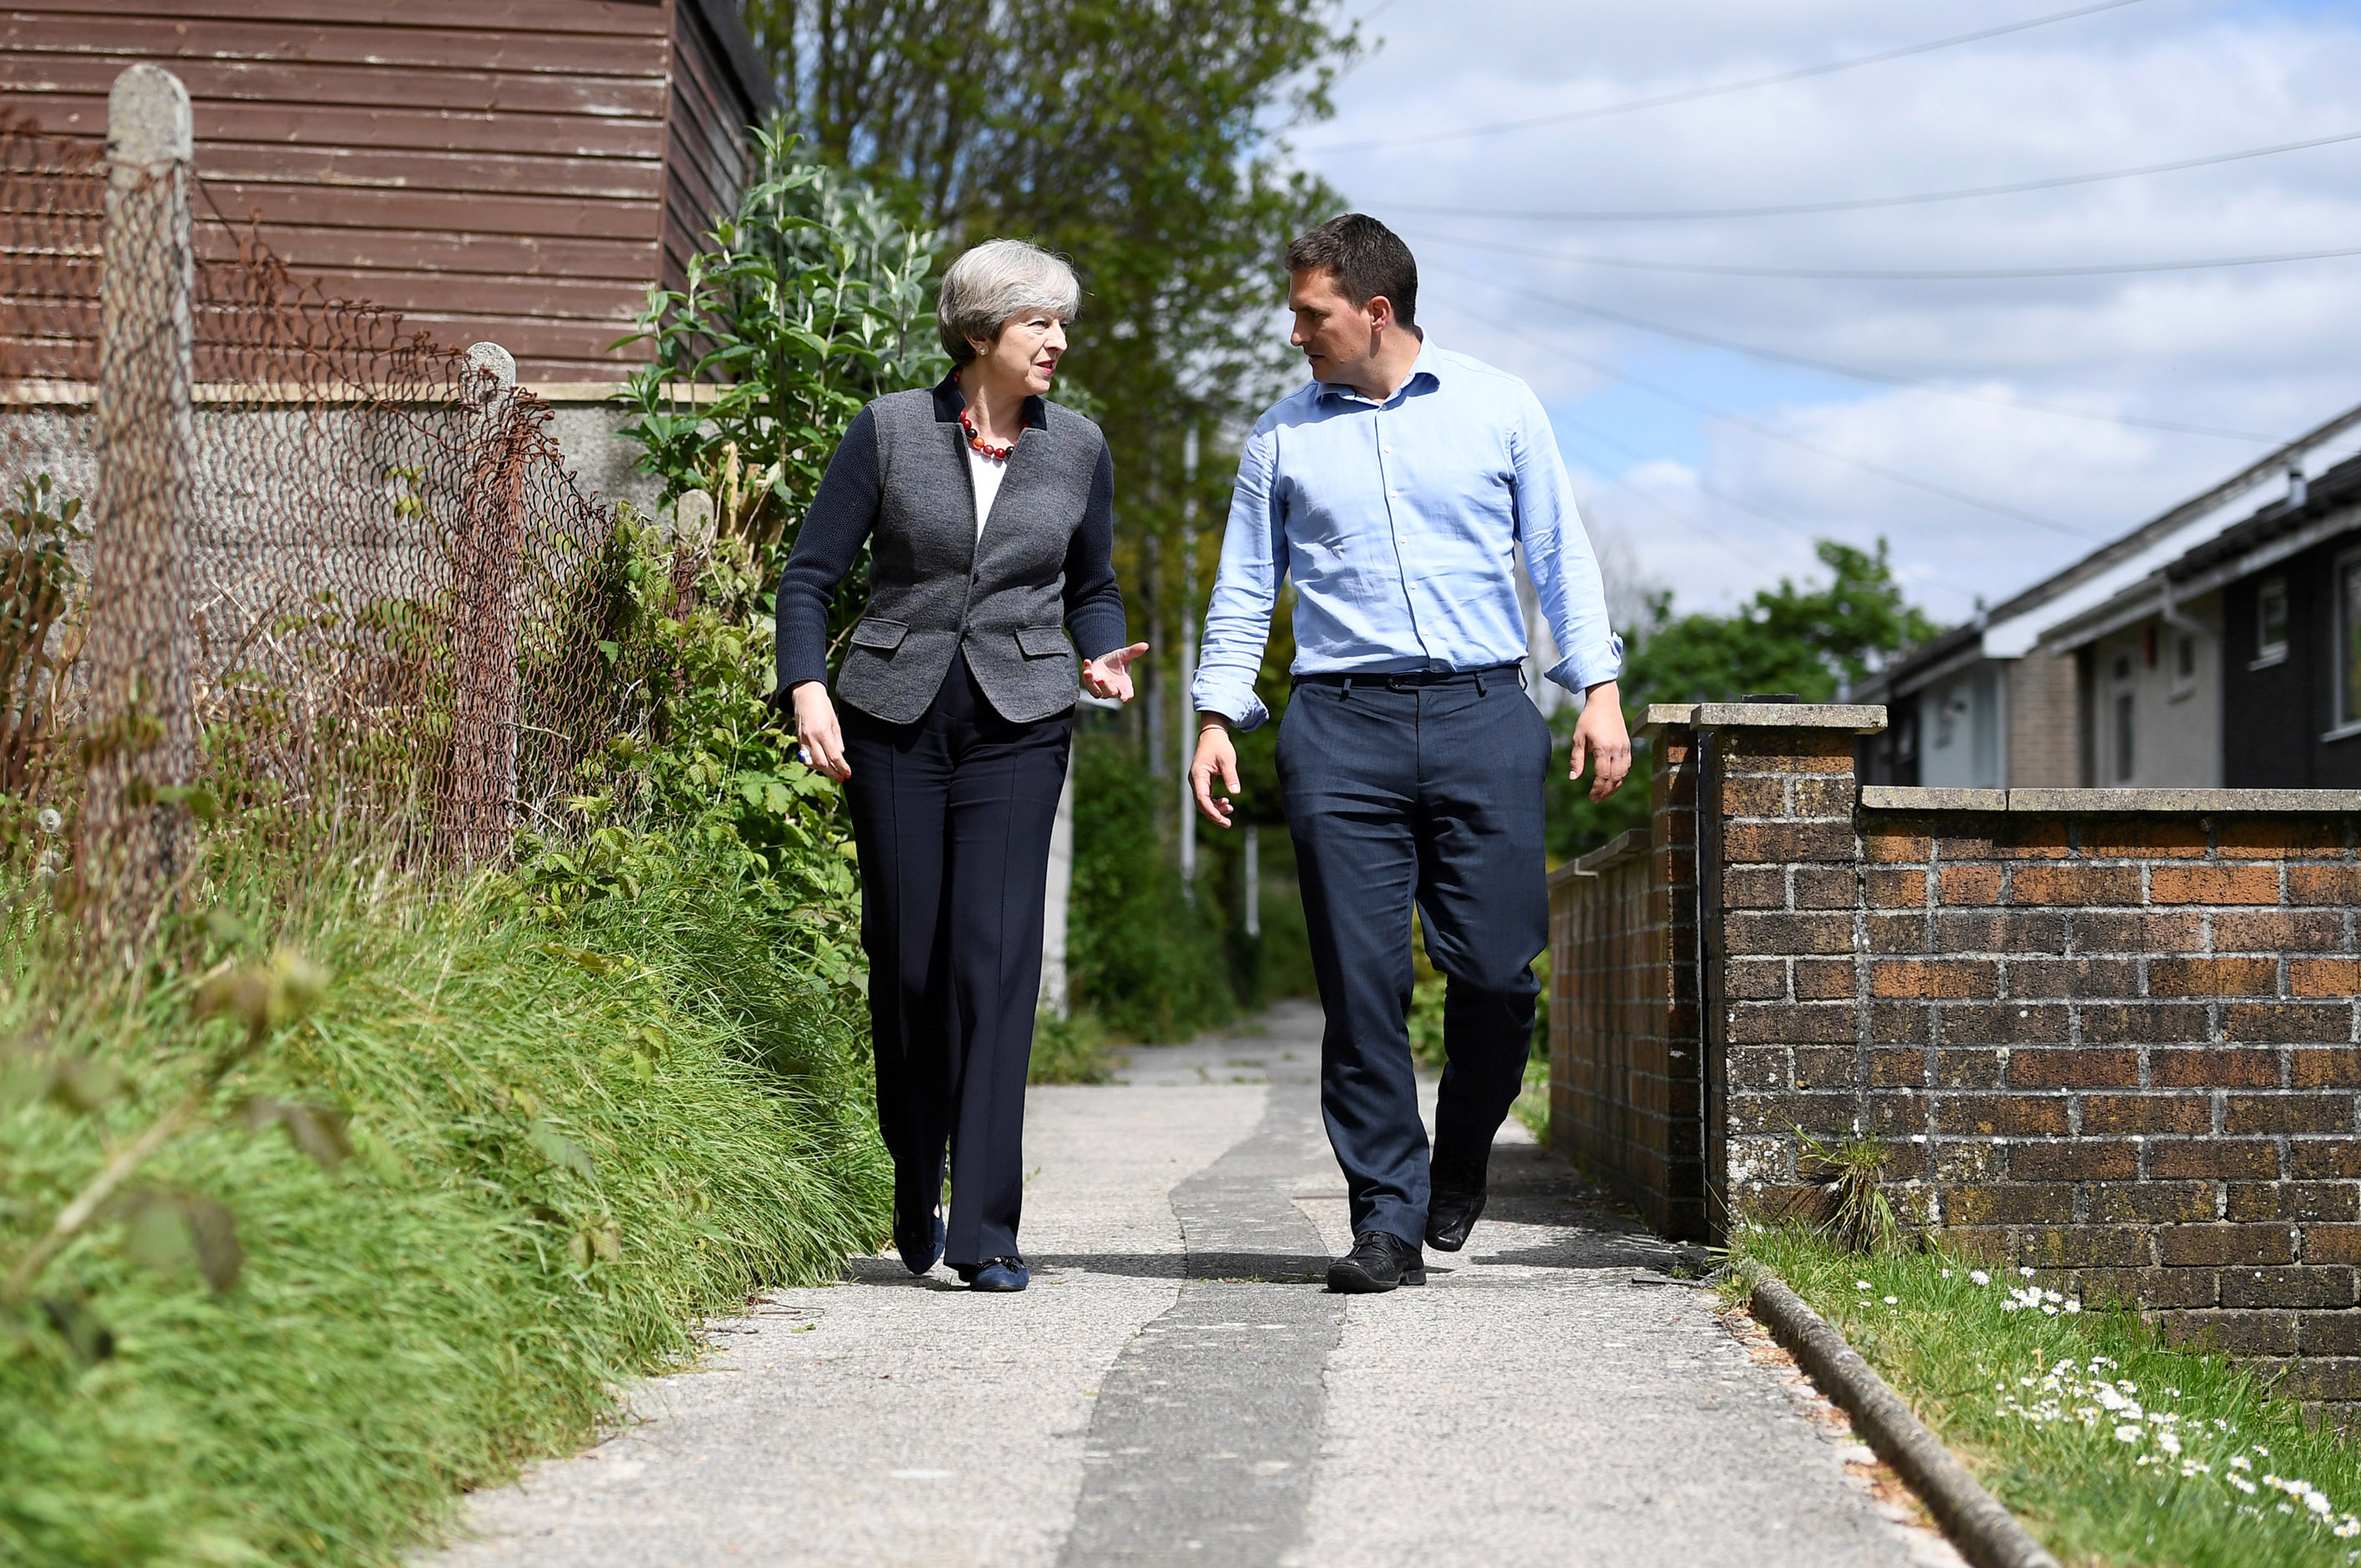 PLYMOUTH, UNITED KINGDOM - MAY 2: Britain's Prime Minister Theresa May walks with local Conservative Party candidate Johnny Mercer during a campaign visit on May 2, 2017 in Plymouth, England. The Prime Minister is campaigning in South-West England, a former Liberal Democrat stronghold, as she urges West Country voters to stick with her party ahead of the polls on June 8. (Photo by Dylan Martinez/WPA Pool/Getty Images)